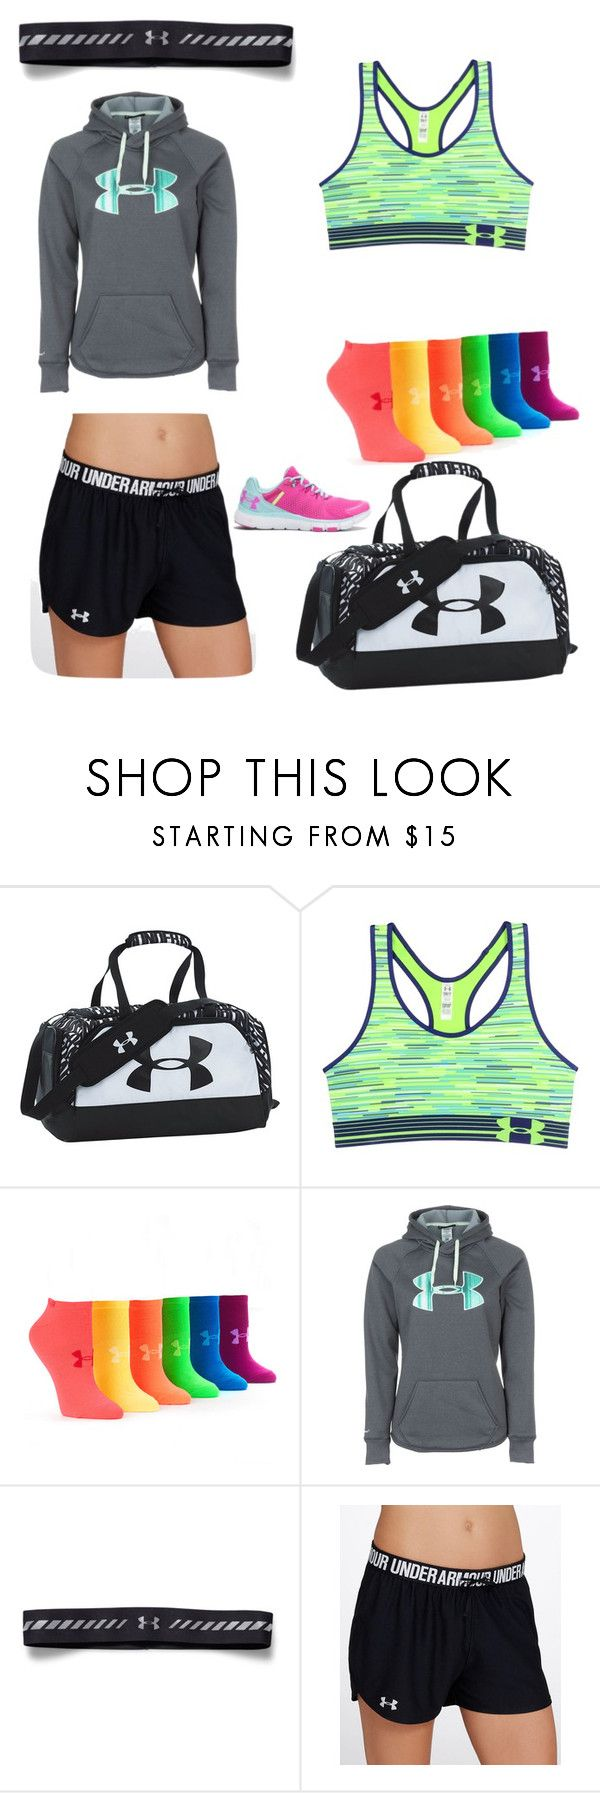 """""""Under amour"""" by mckinley2004 ❤ liked on Polyvore featuring Under Armour"""